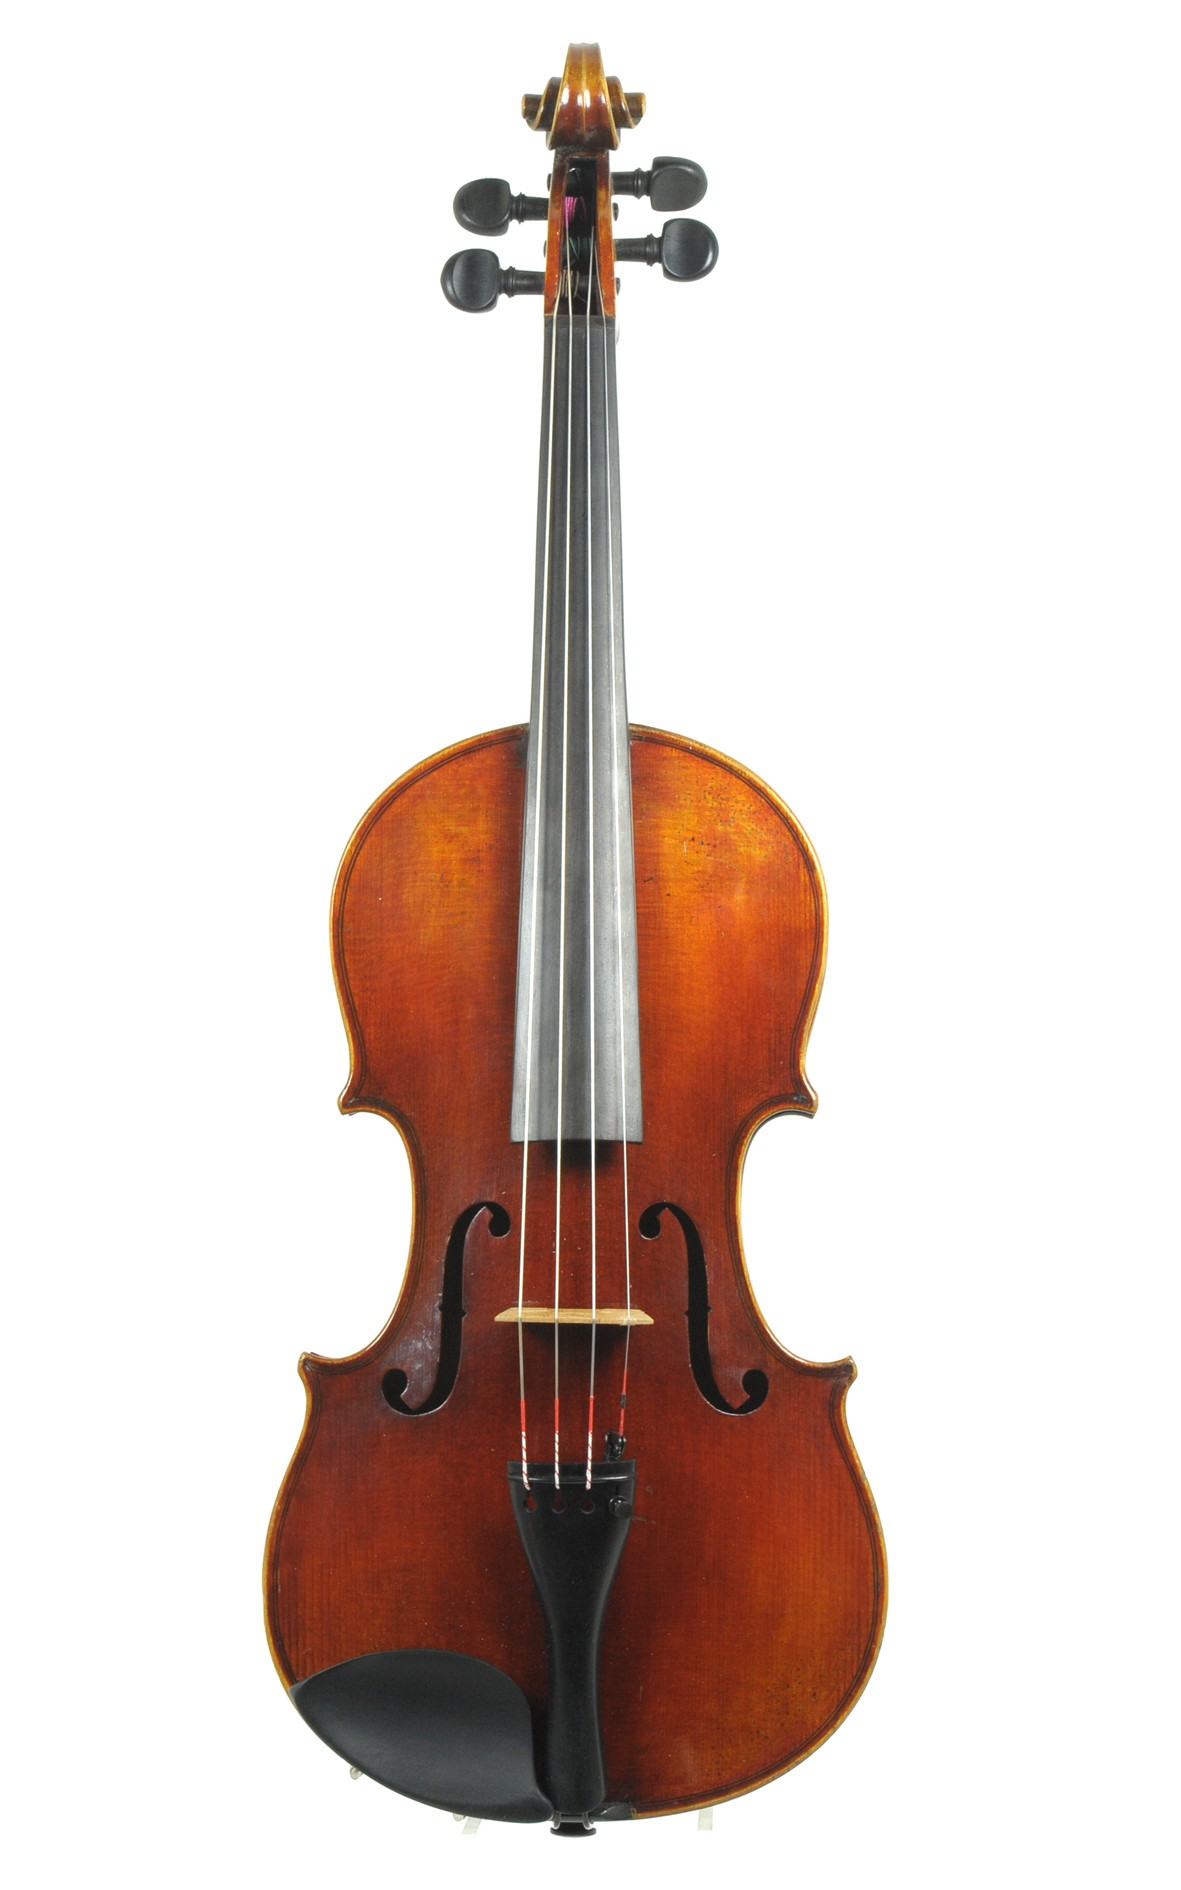 Outstanding Markneukirchen violin, approx. 1900